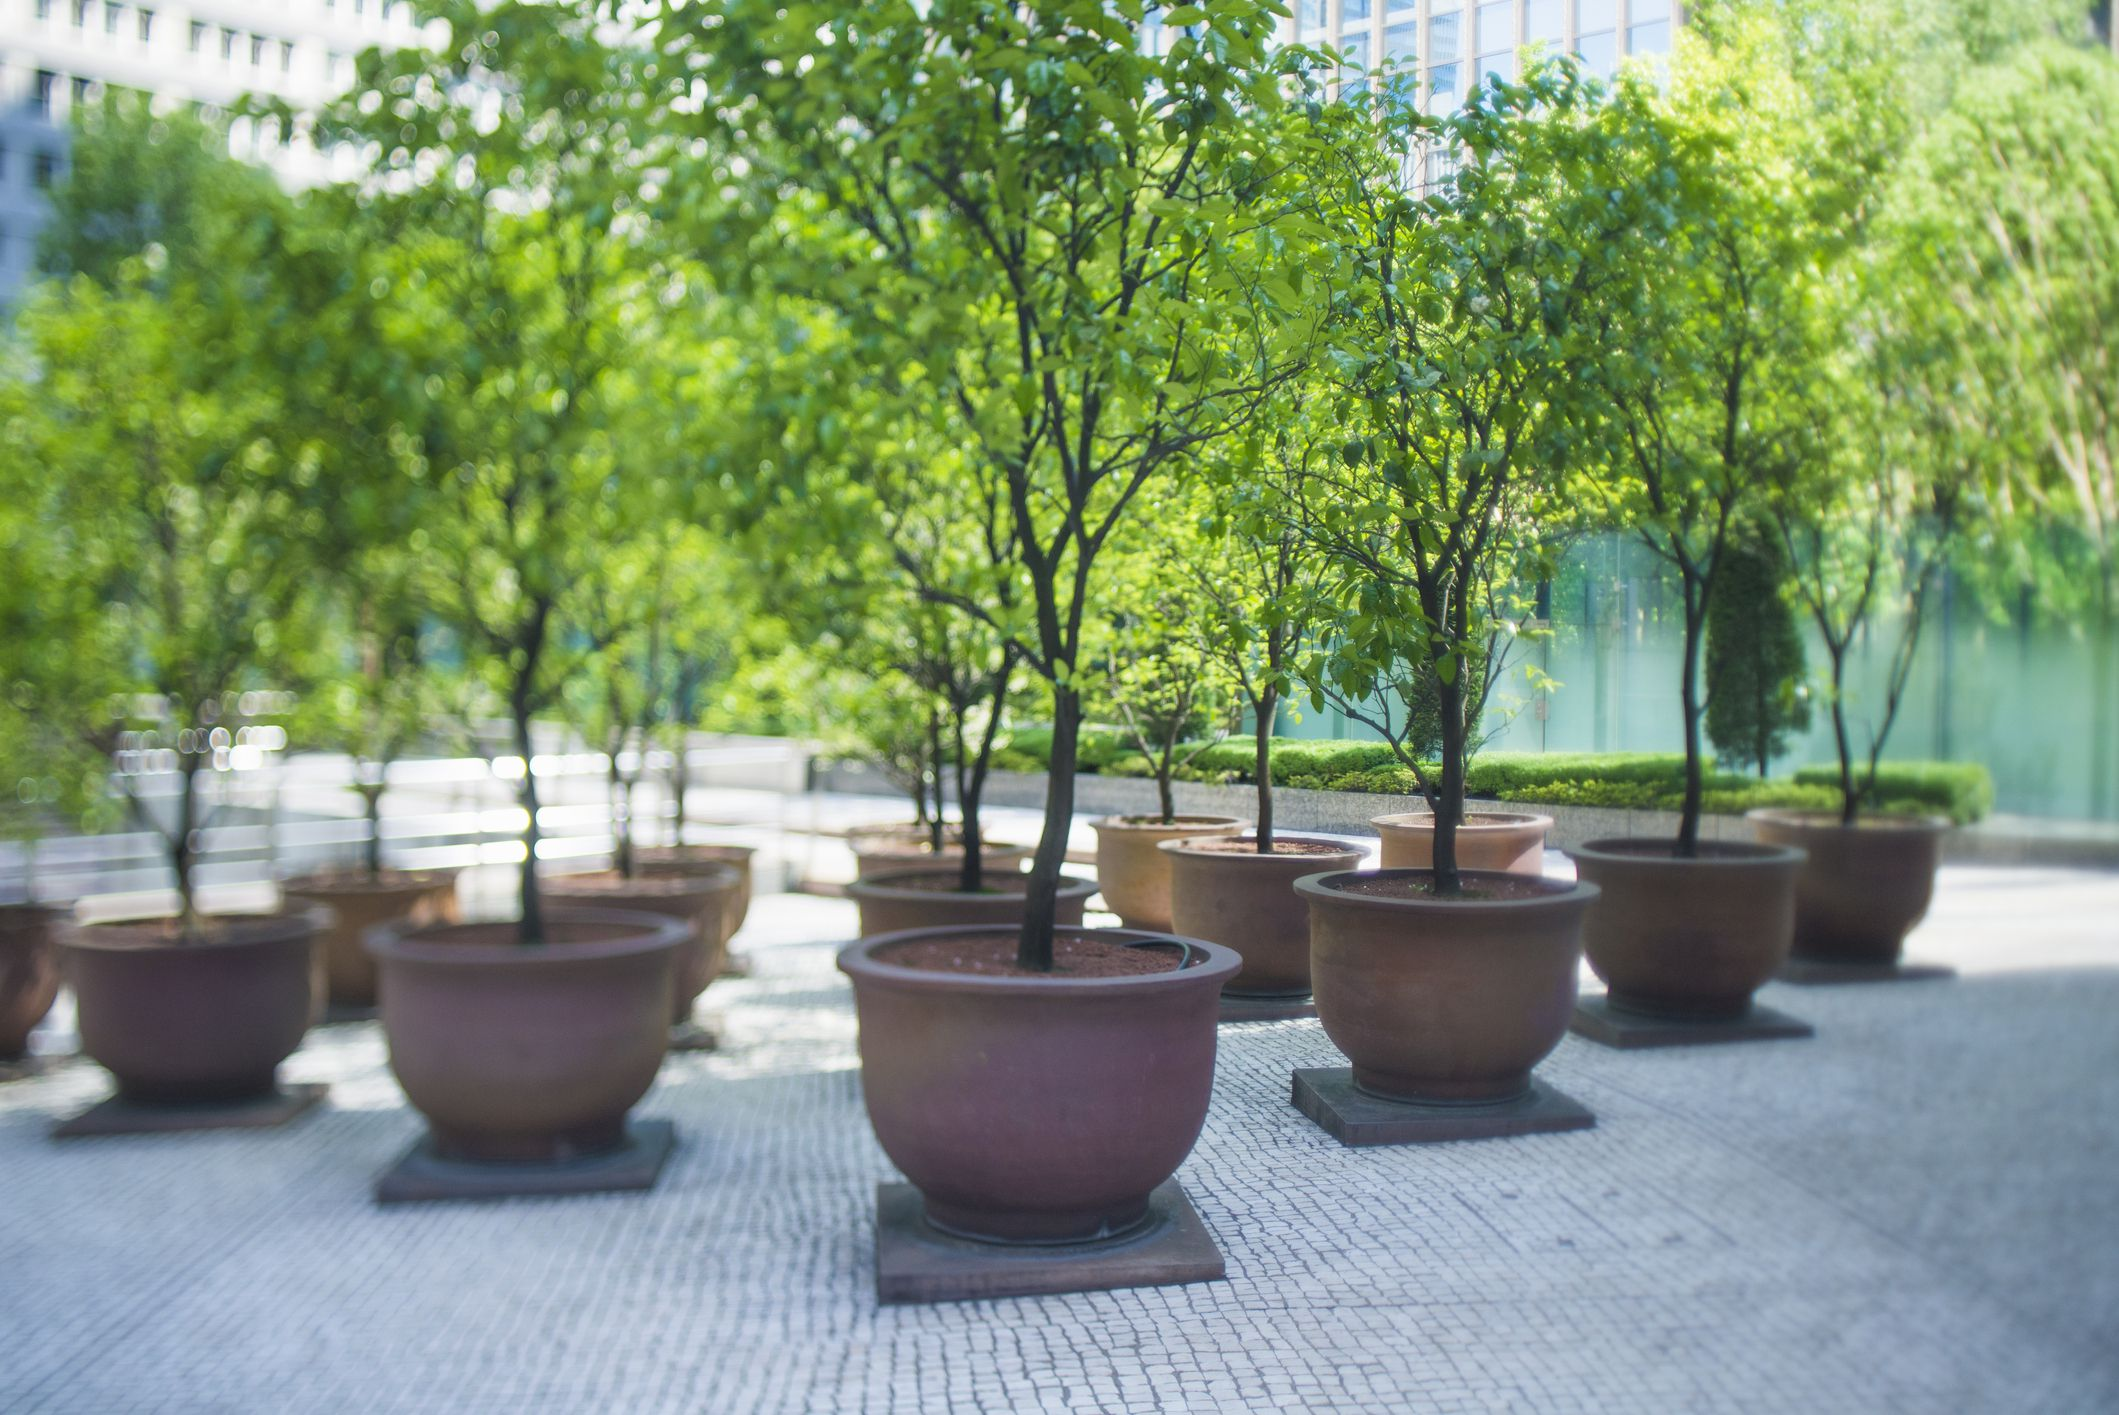 Growing Trees and Shrubs in Pots The Basics